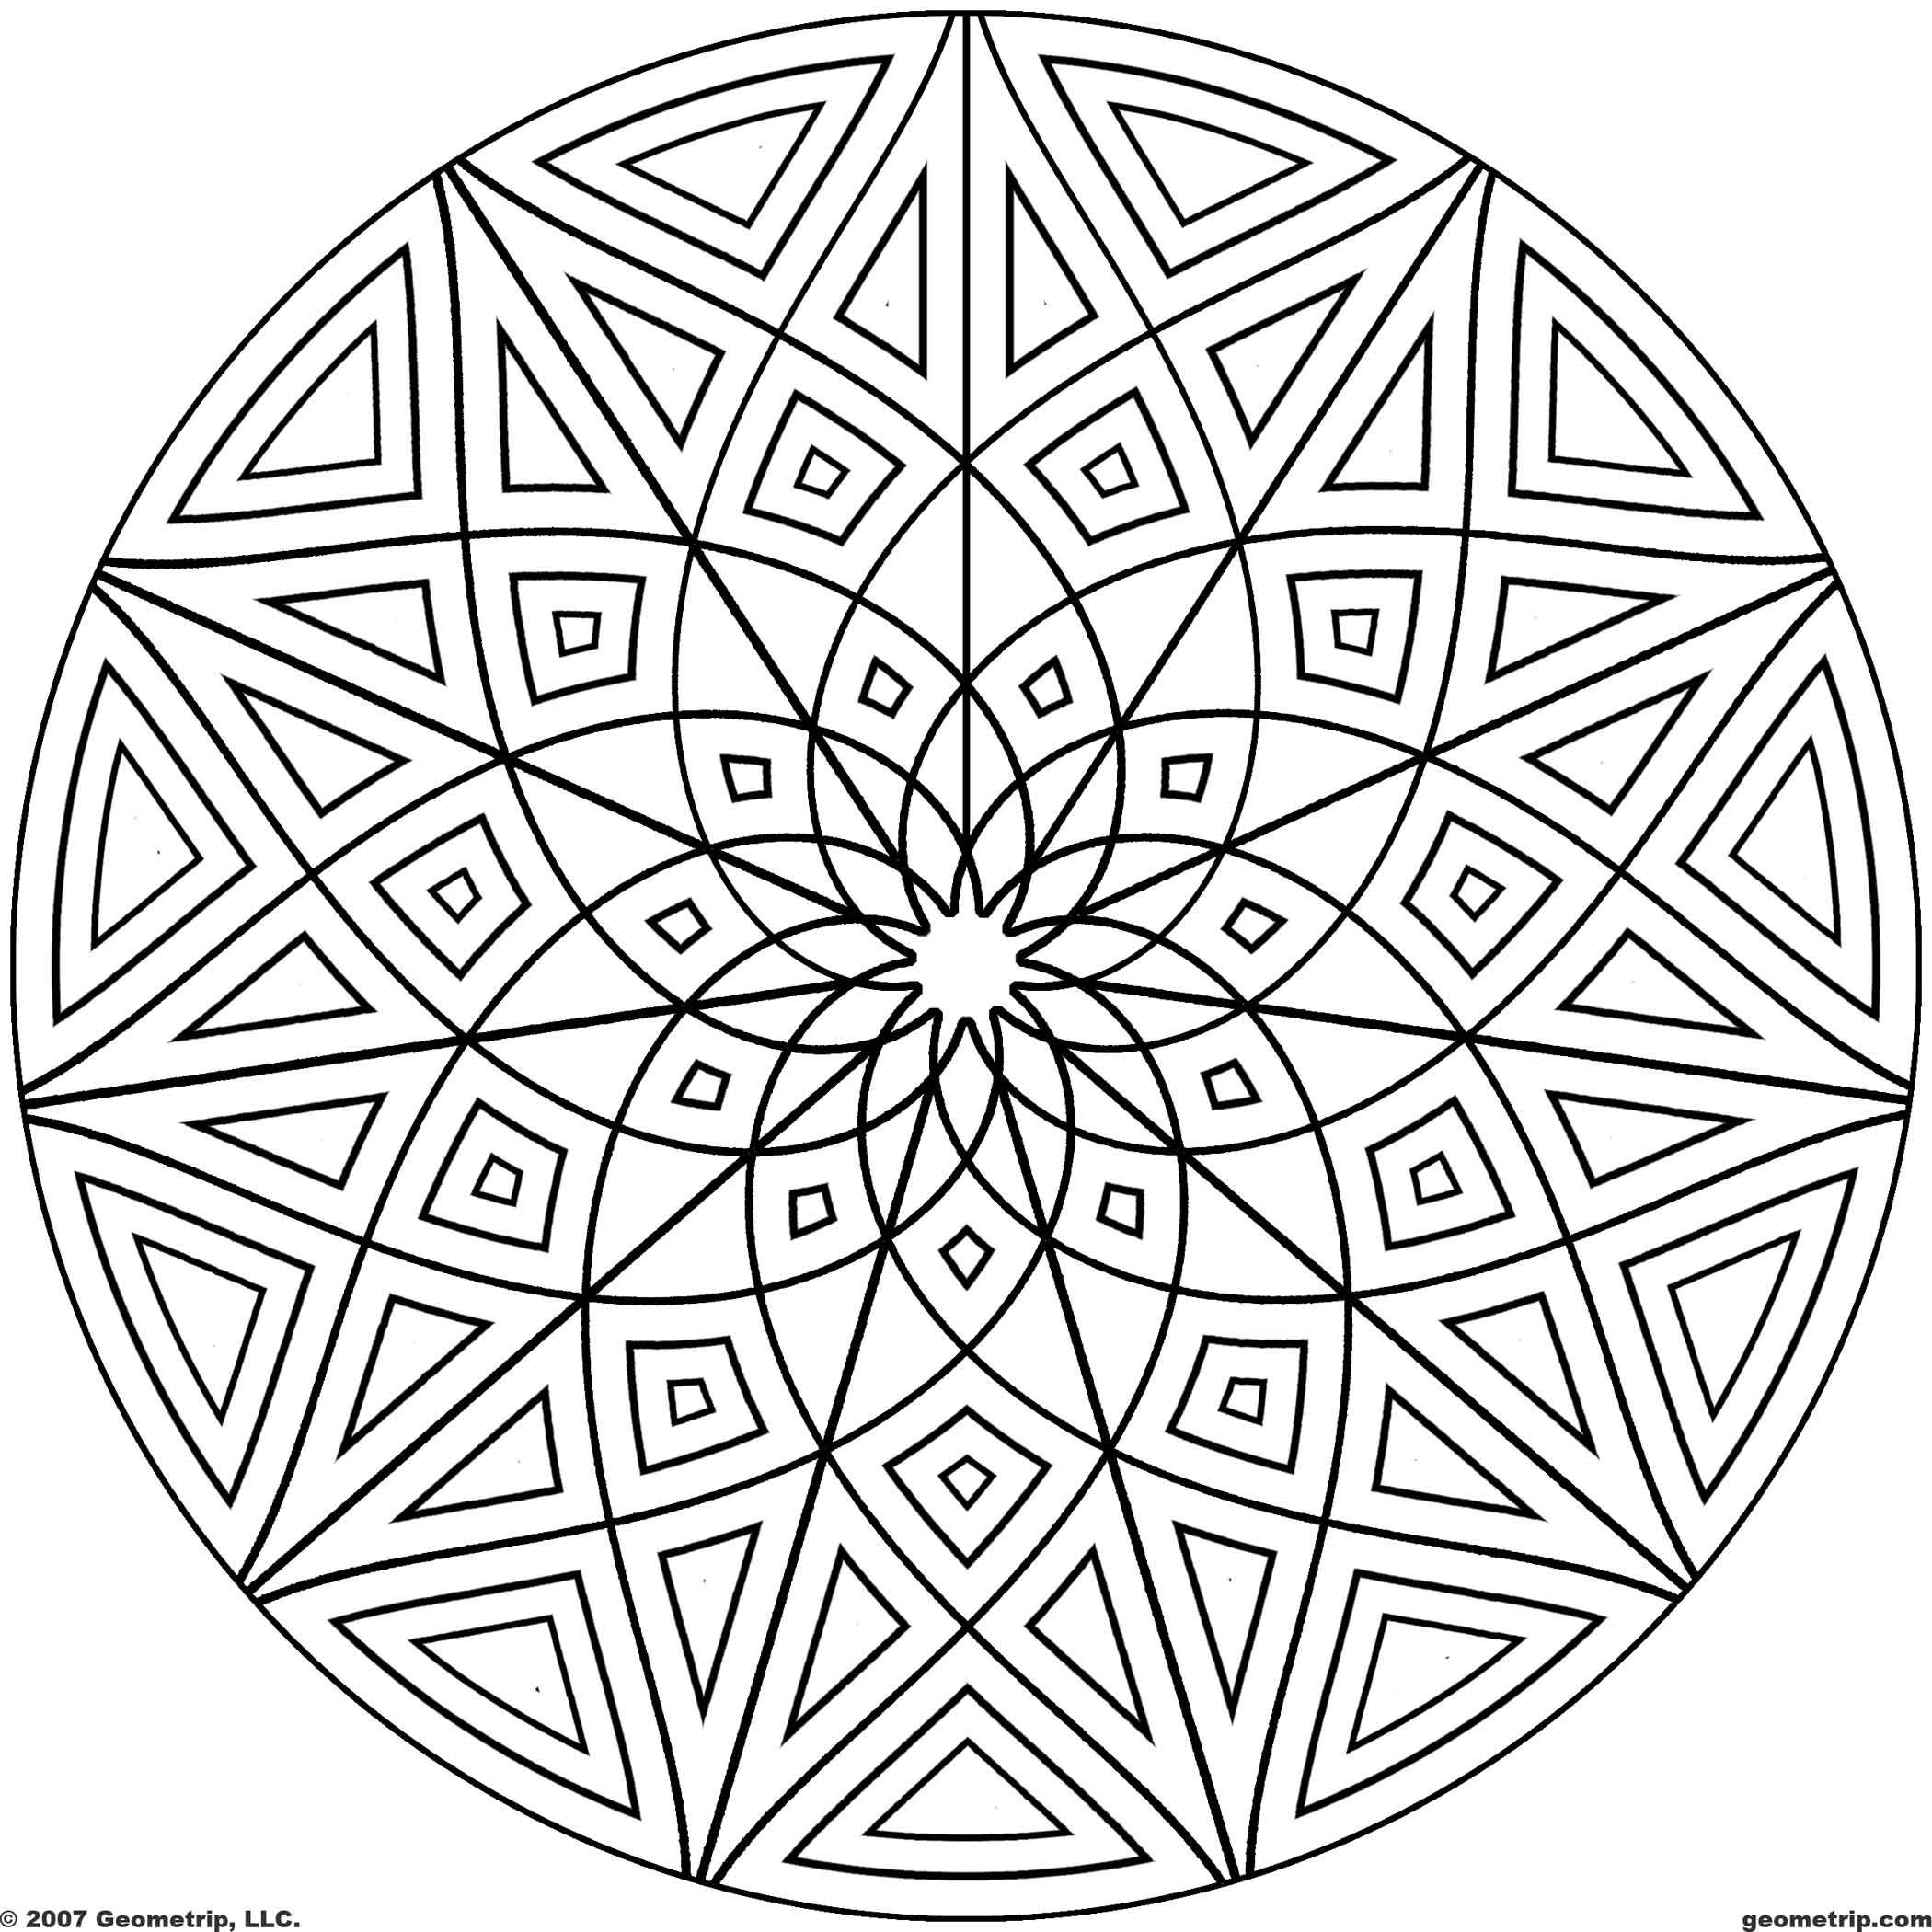 Free coloring pages kaleidoscope designs - Kaleidoscope Coloring Pages Geometrip Com Free Geometric Coloring Designs Circles